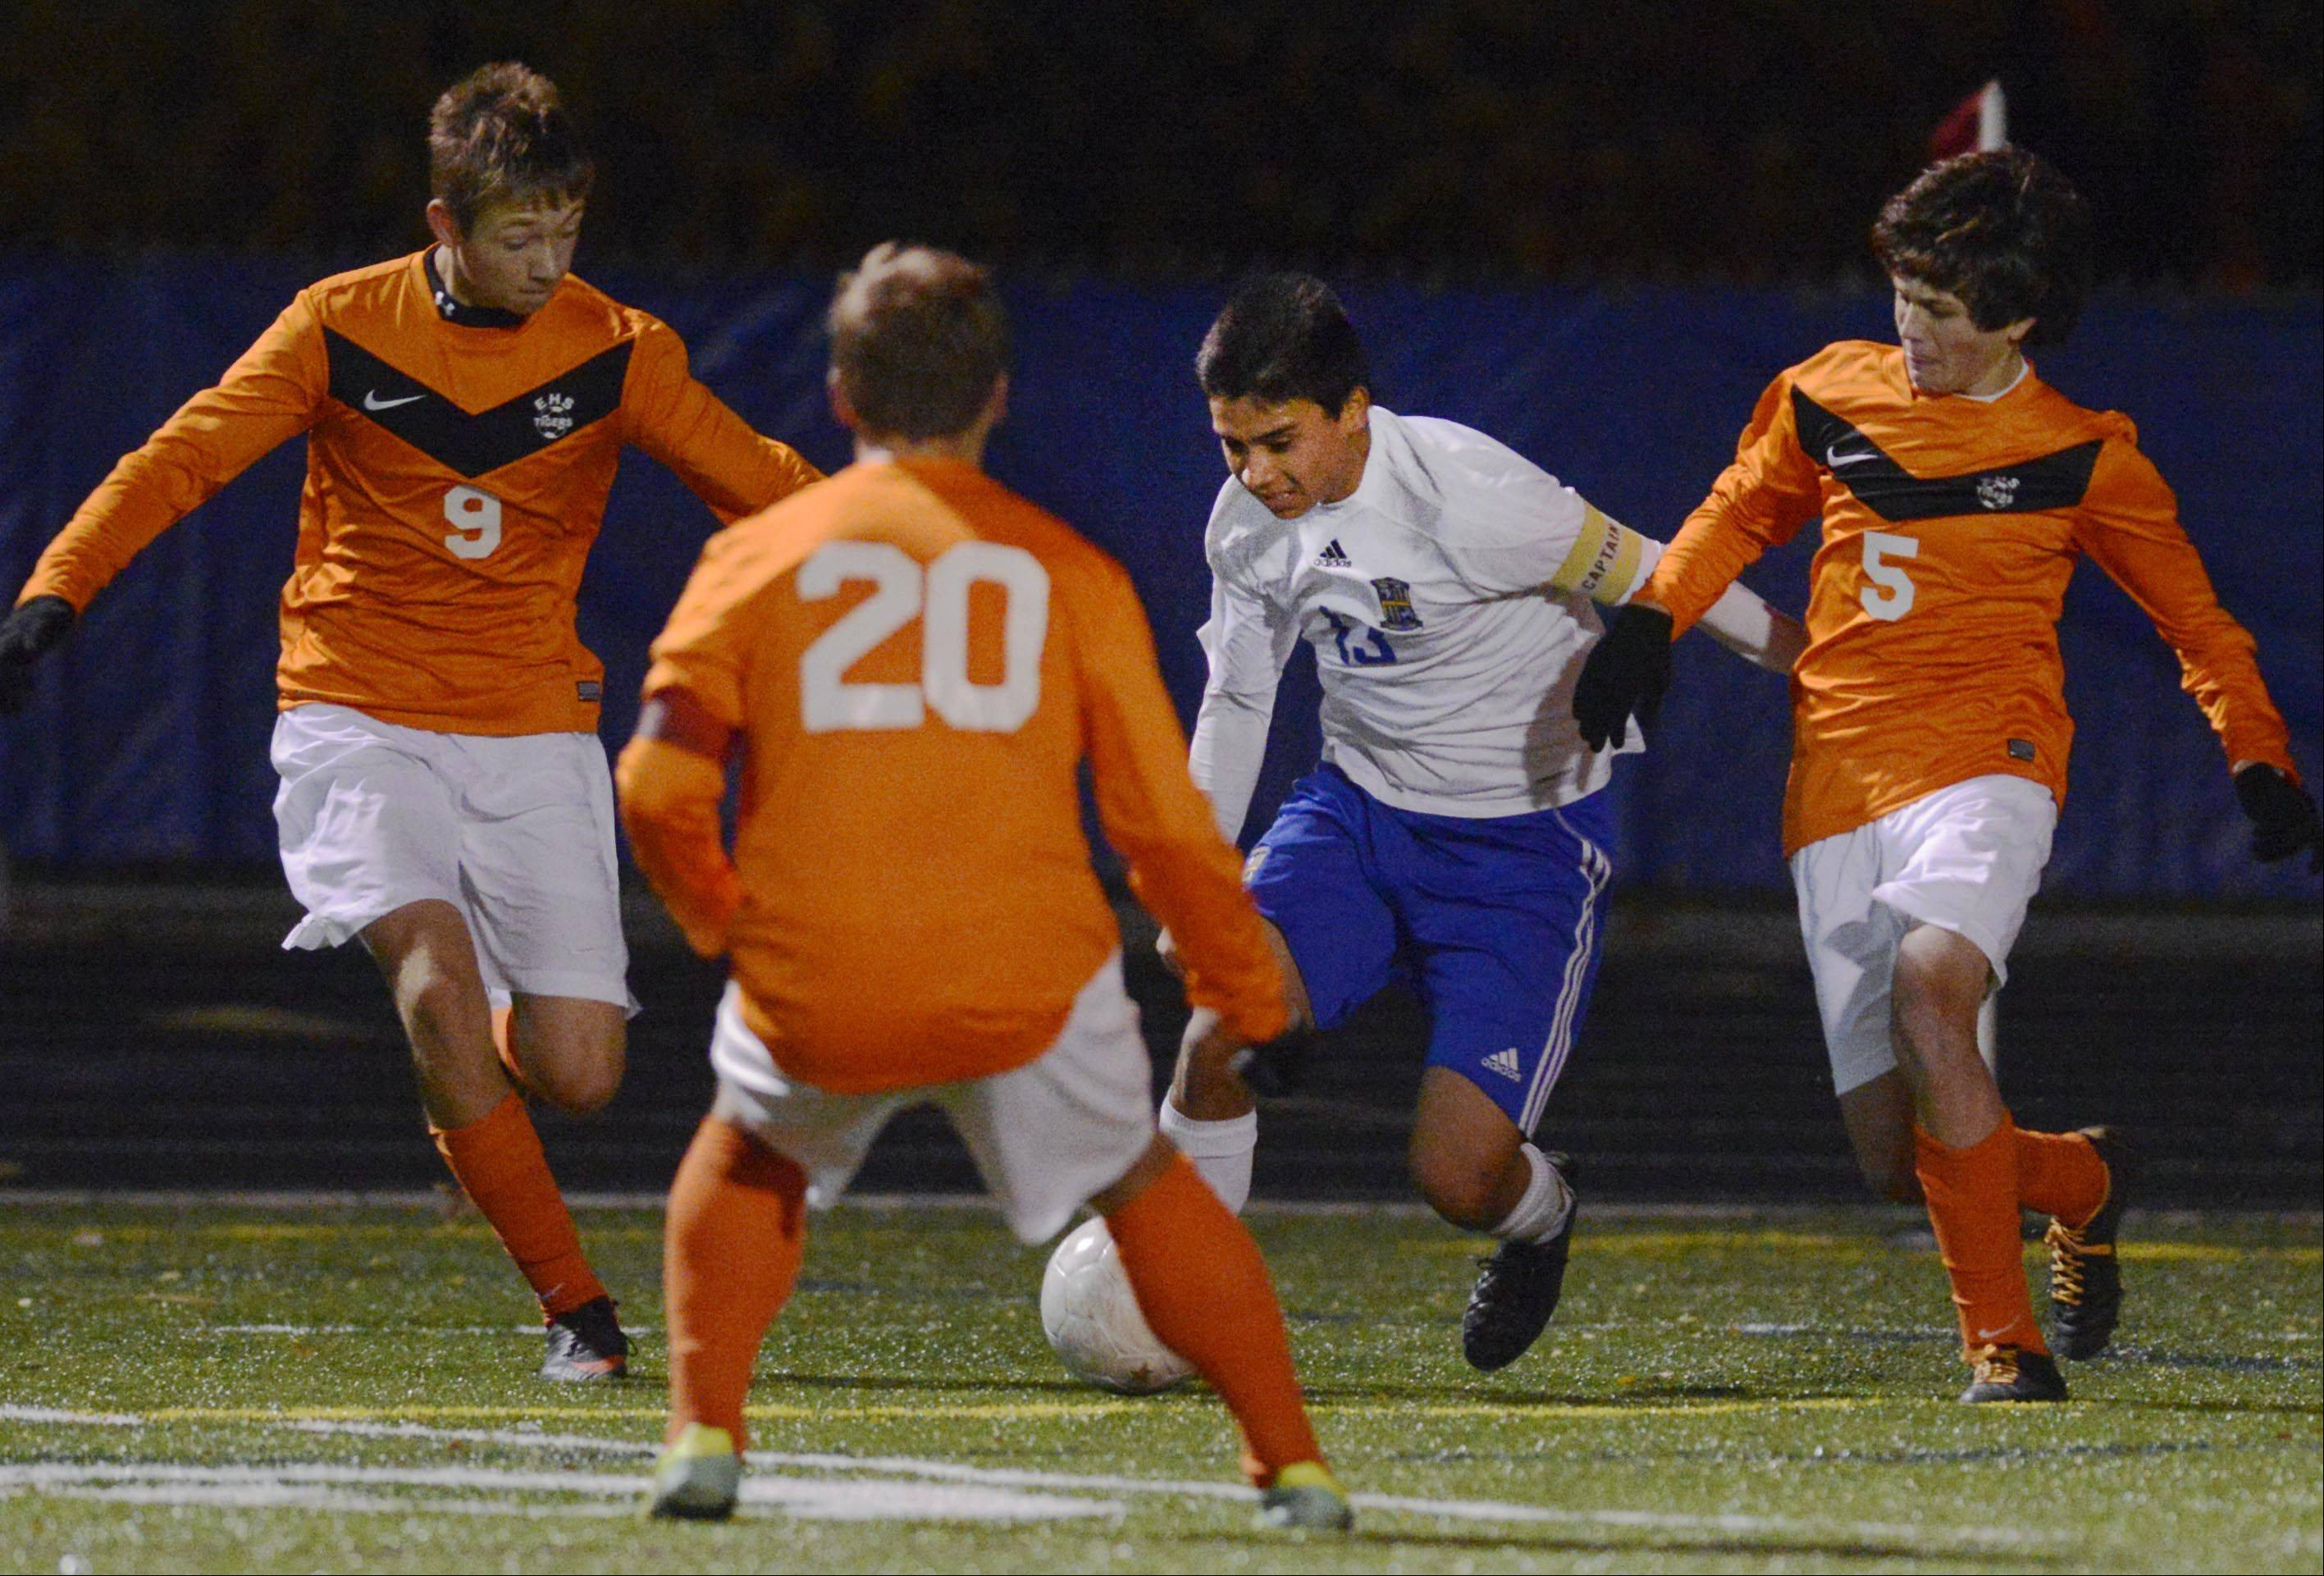 John Starks/jstarks@dailyherald.comWheeling's Jose Garcia is surrounded by Edwardsville players as he tries to center the ball in front of the net in the Class 3A soccer state championship game Saturday night in Hoffman Estates.